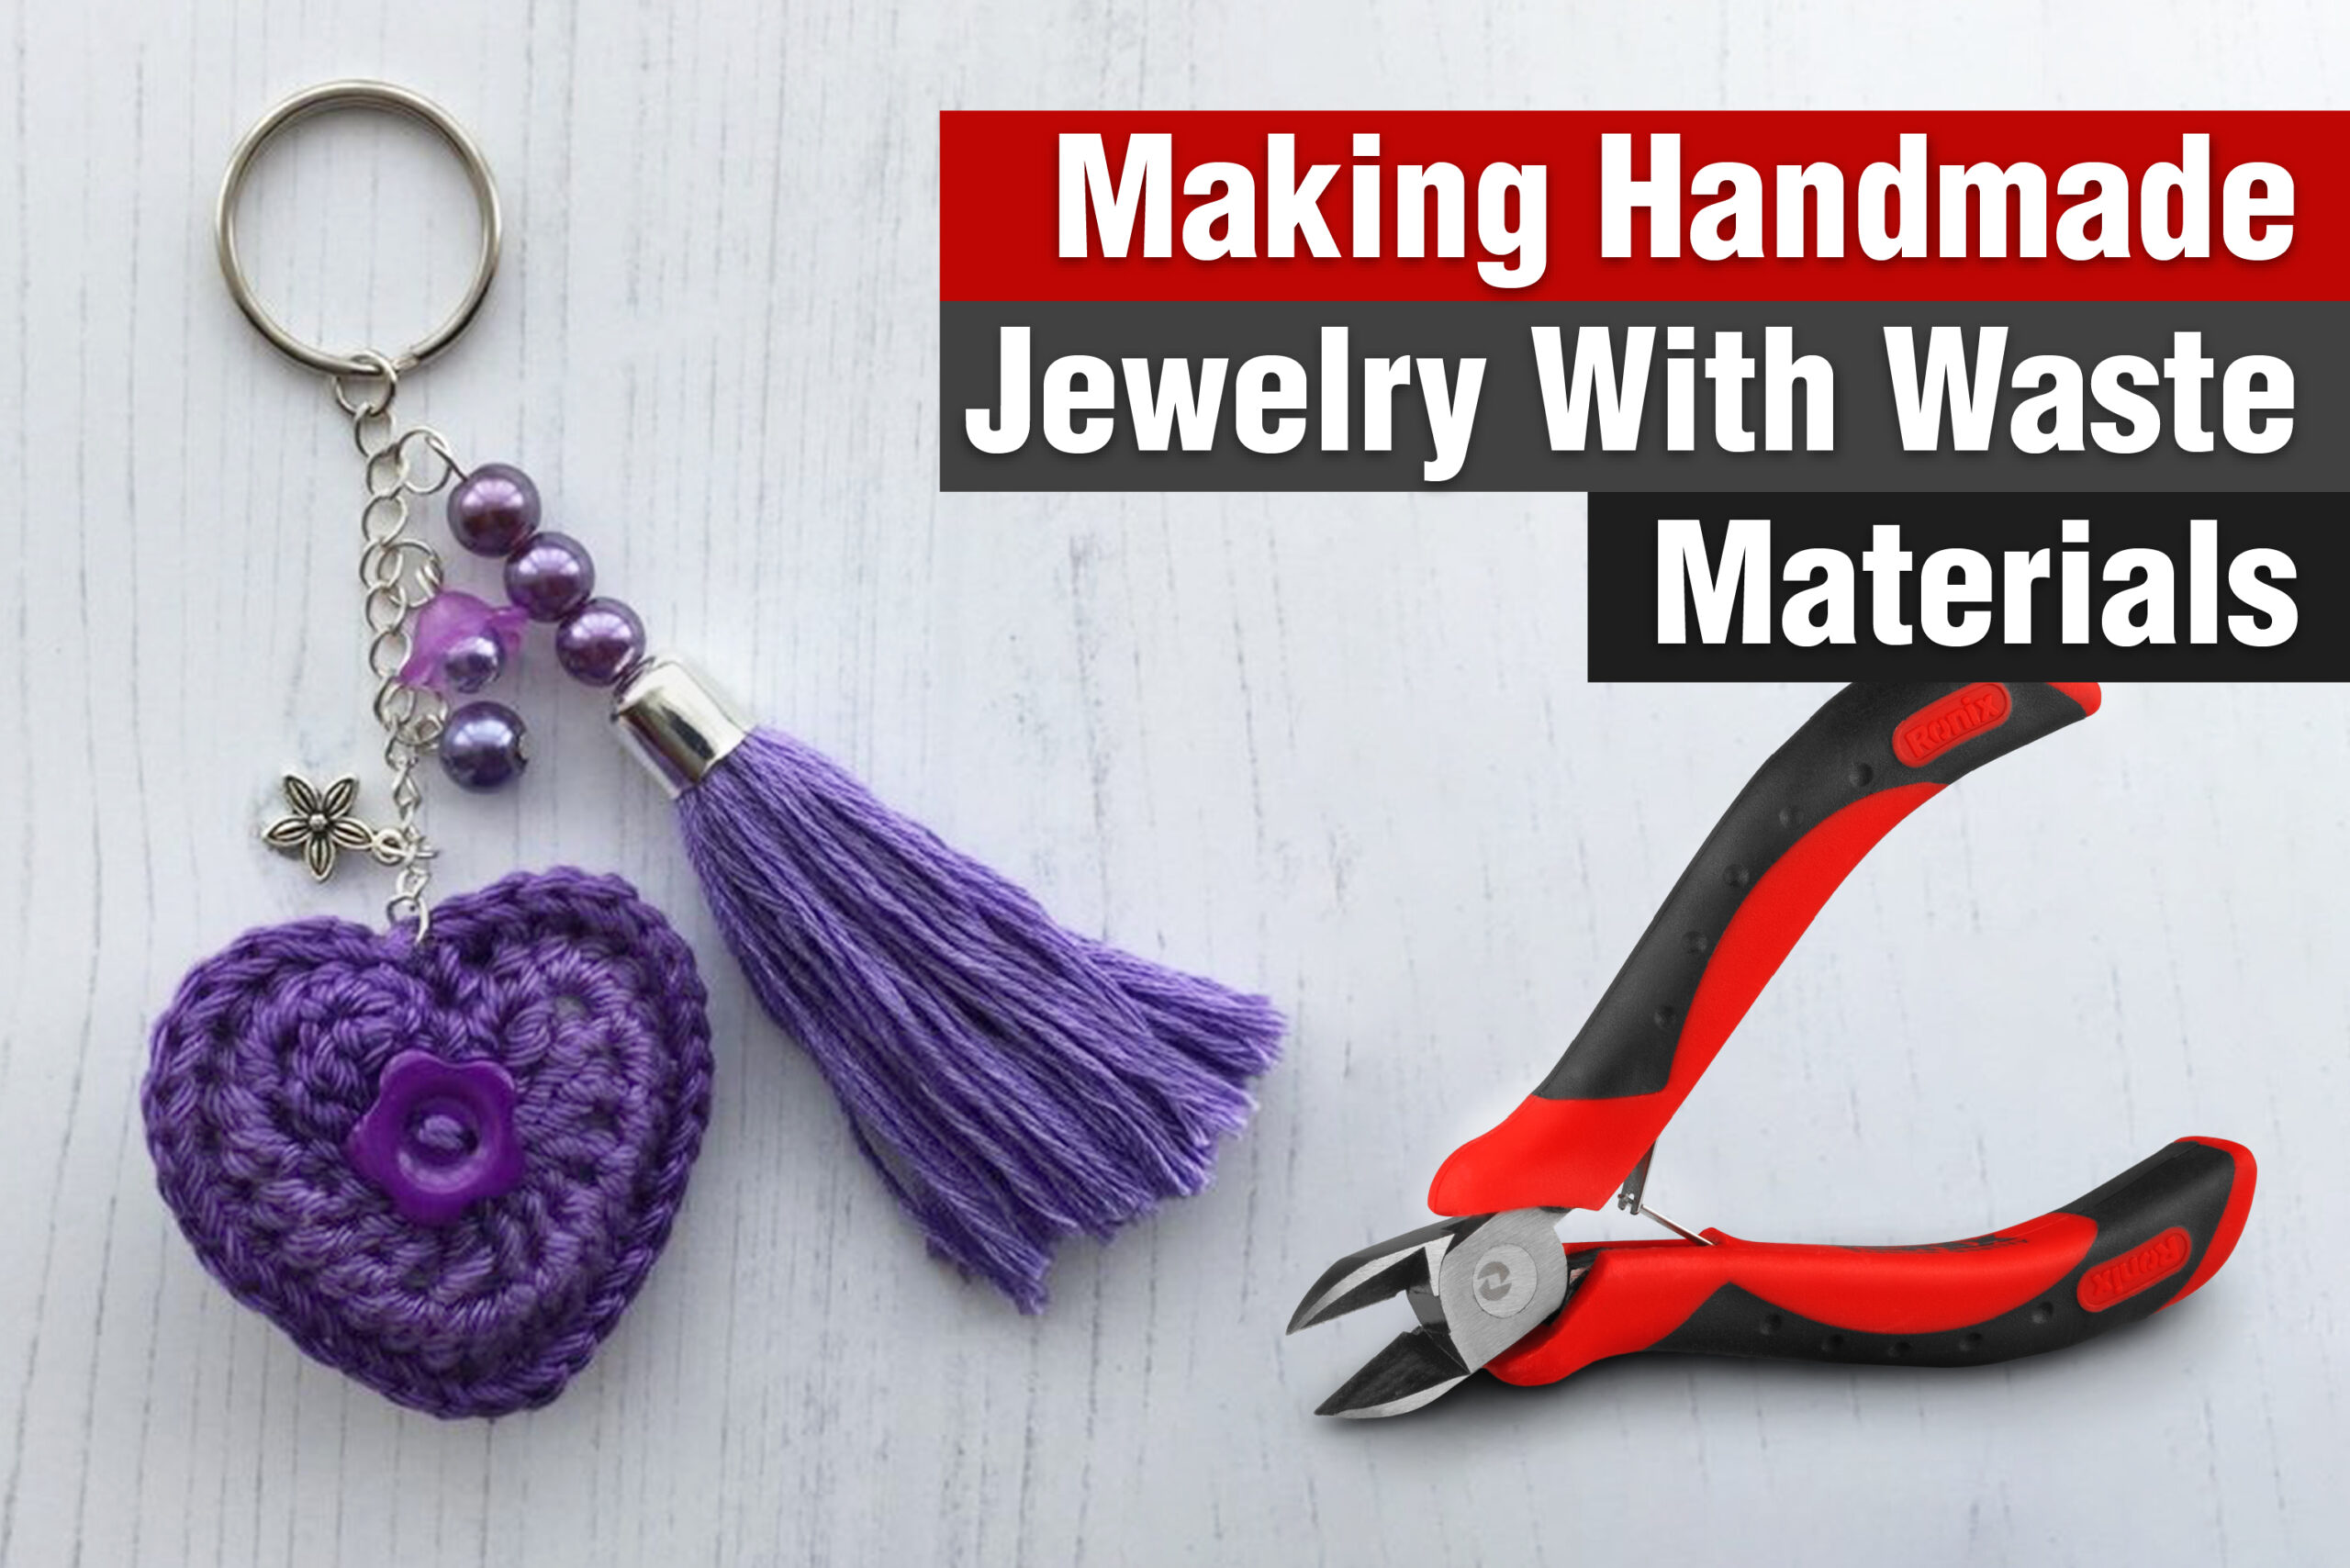 Making Handmade Jewelry with Waste Materials-ronix-tools